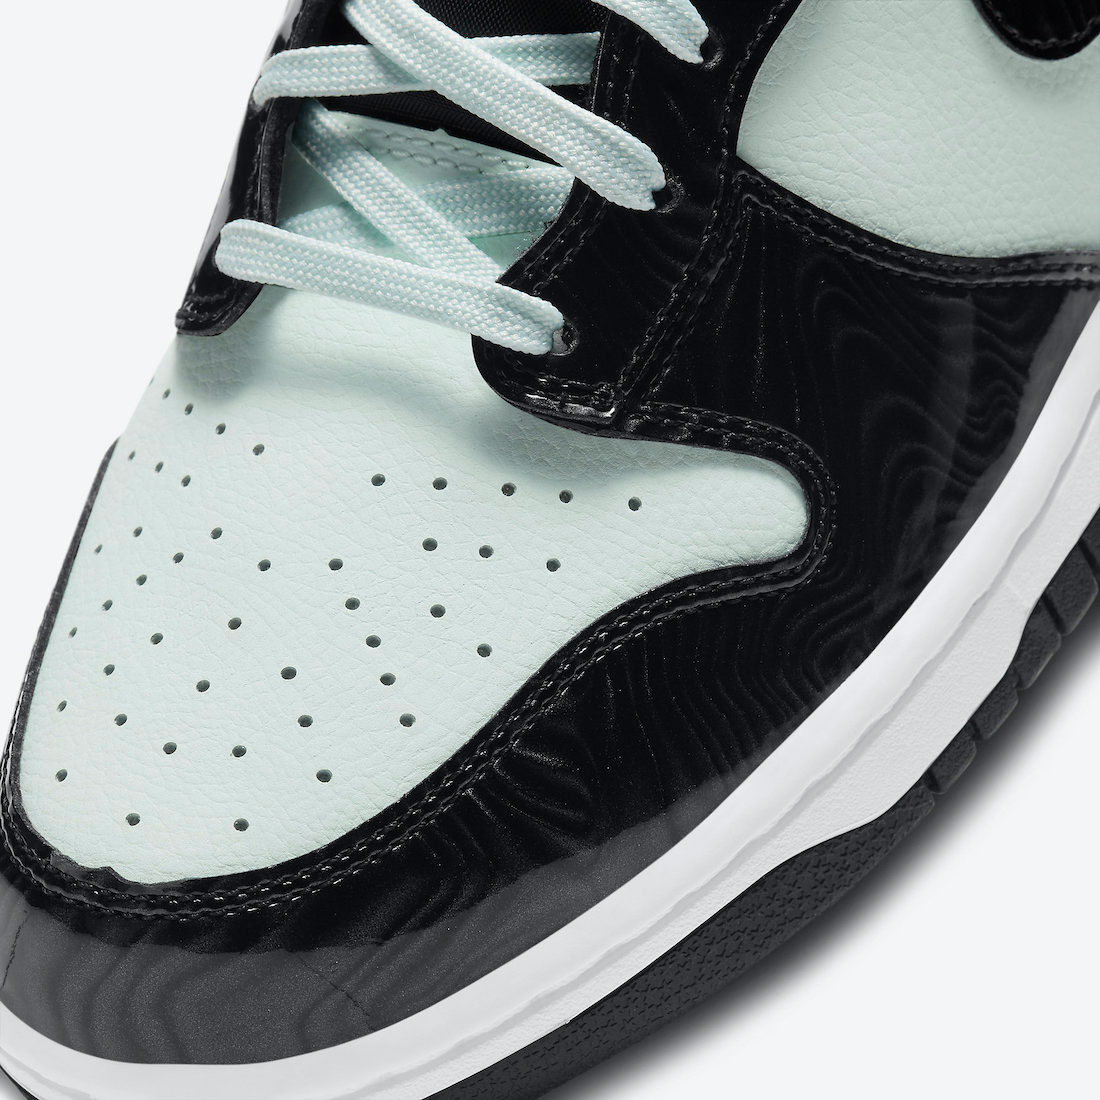 nike-dunk-high-all-star-2021-release-date-price-resell-where-to-buy-7